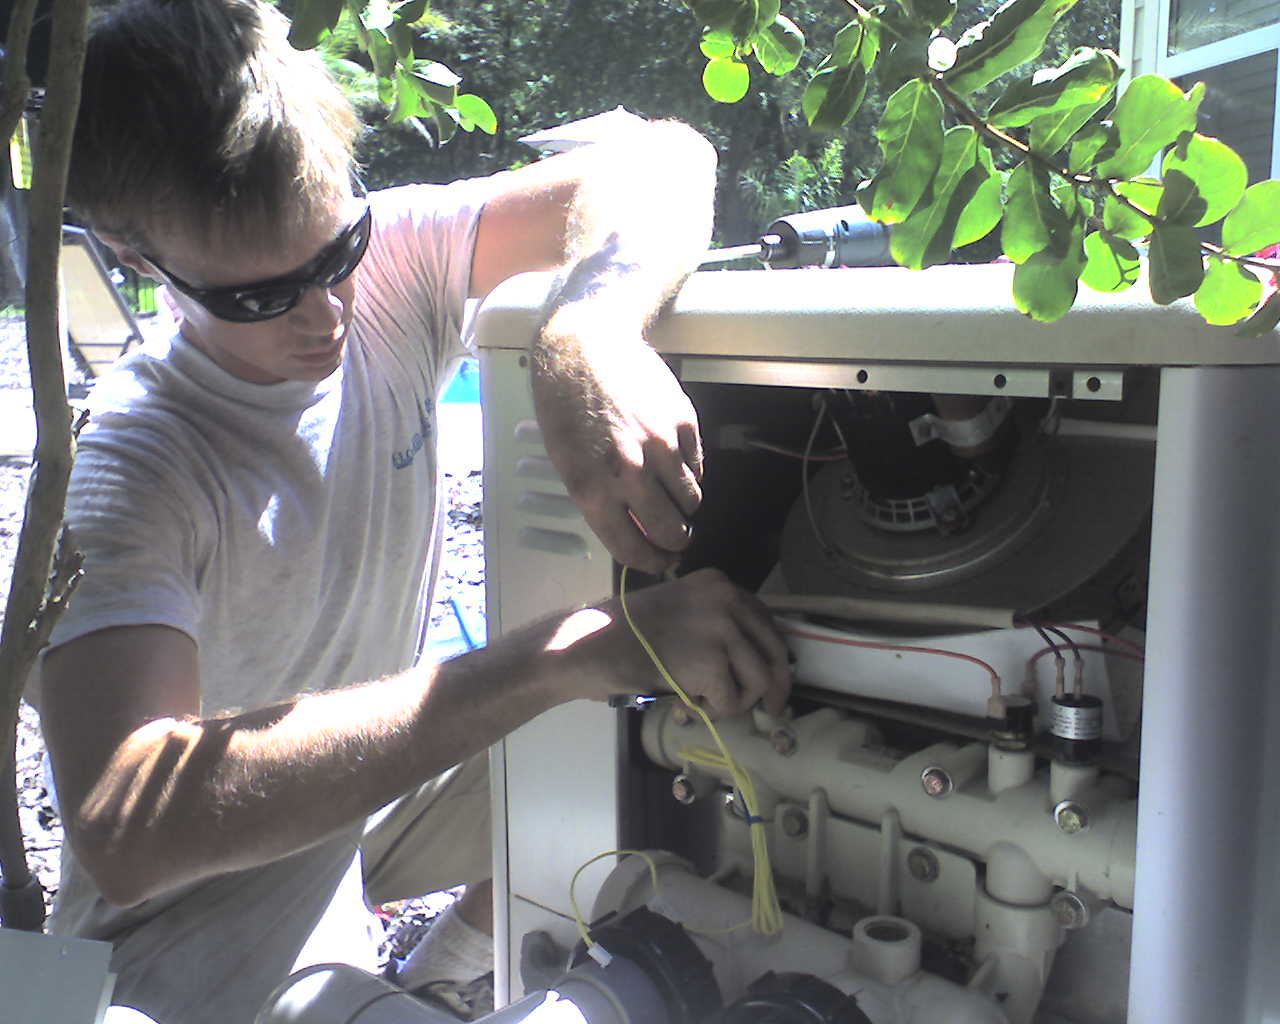 newport beach pool heater repair 888 296 2879 - Pool Heater Repair